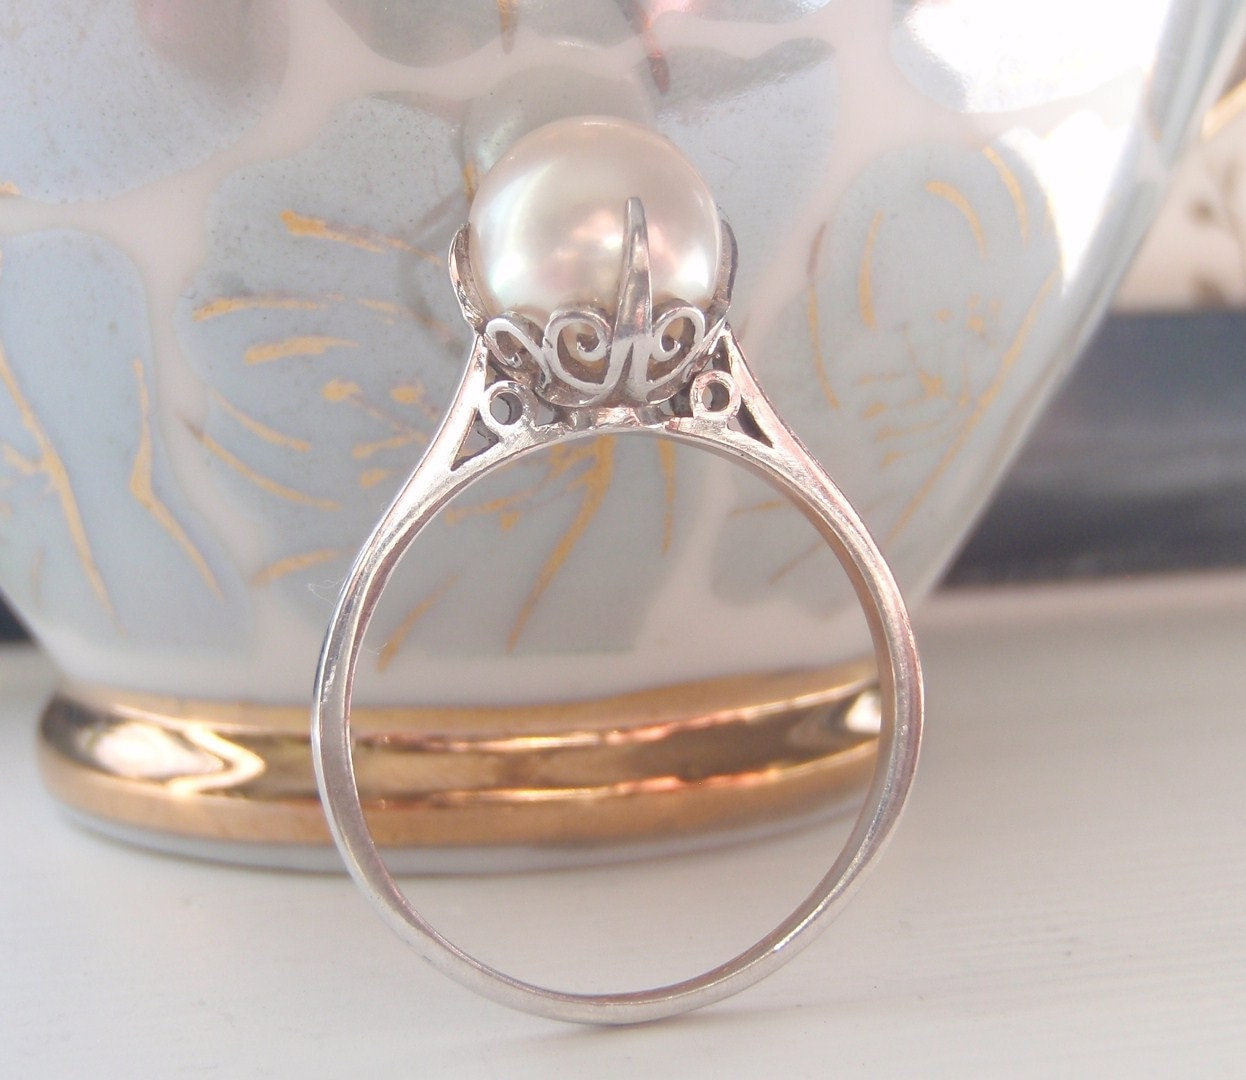 RESERVED For LINDA. Deposit. Rare Vintage Mikimoto Pearl And